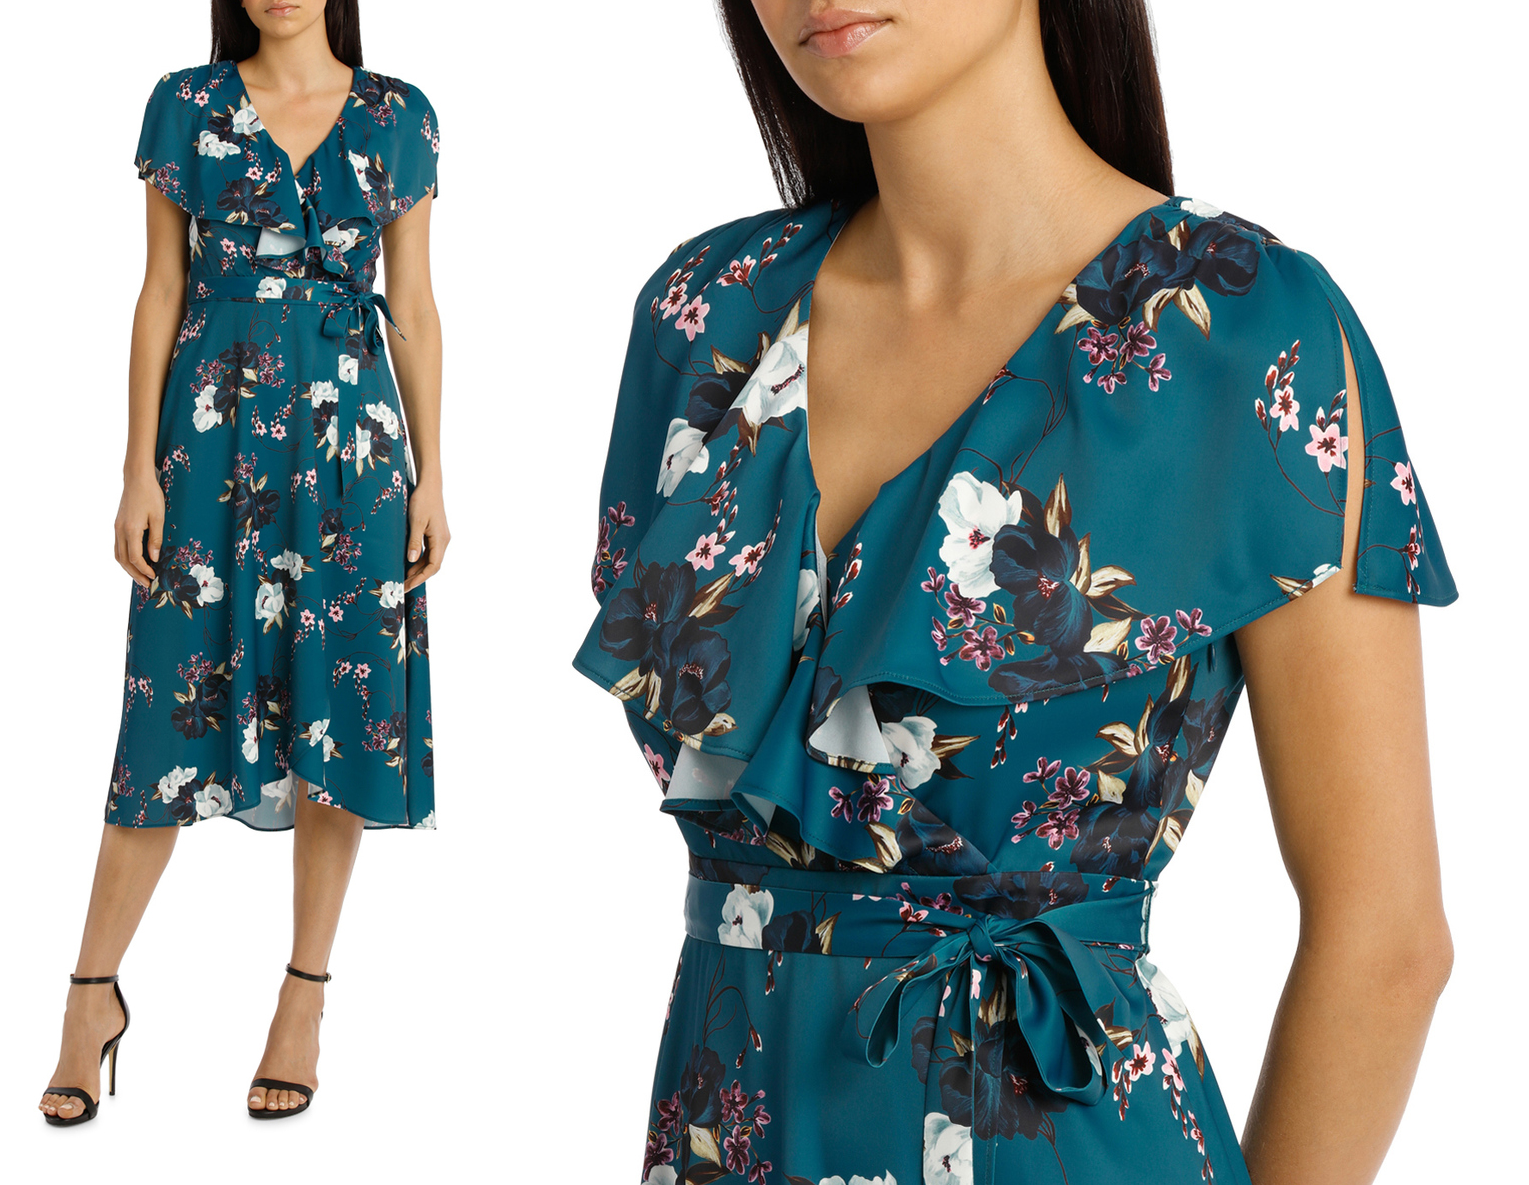 0c482a4fee57 Turquoise satin midi dress with white and grey flowers. LEONA BY LEONA  EDMISTON Teal Carnation Wrap Flutter Sleeve Midi Dress was  189.95 now   132.96.